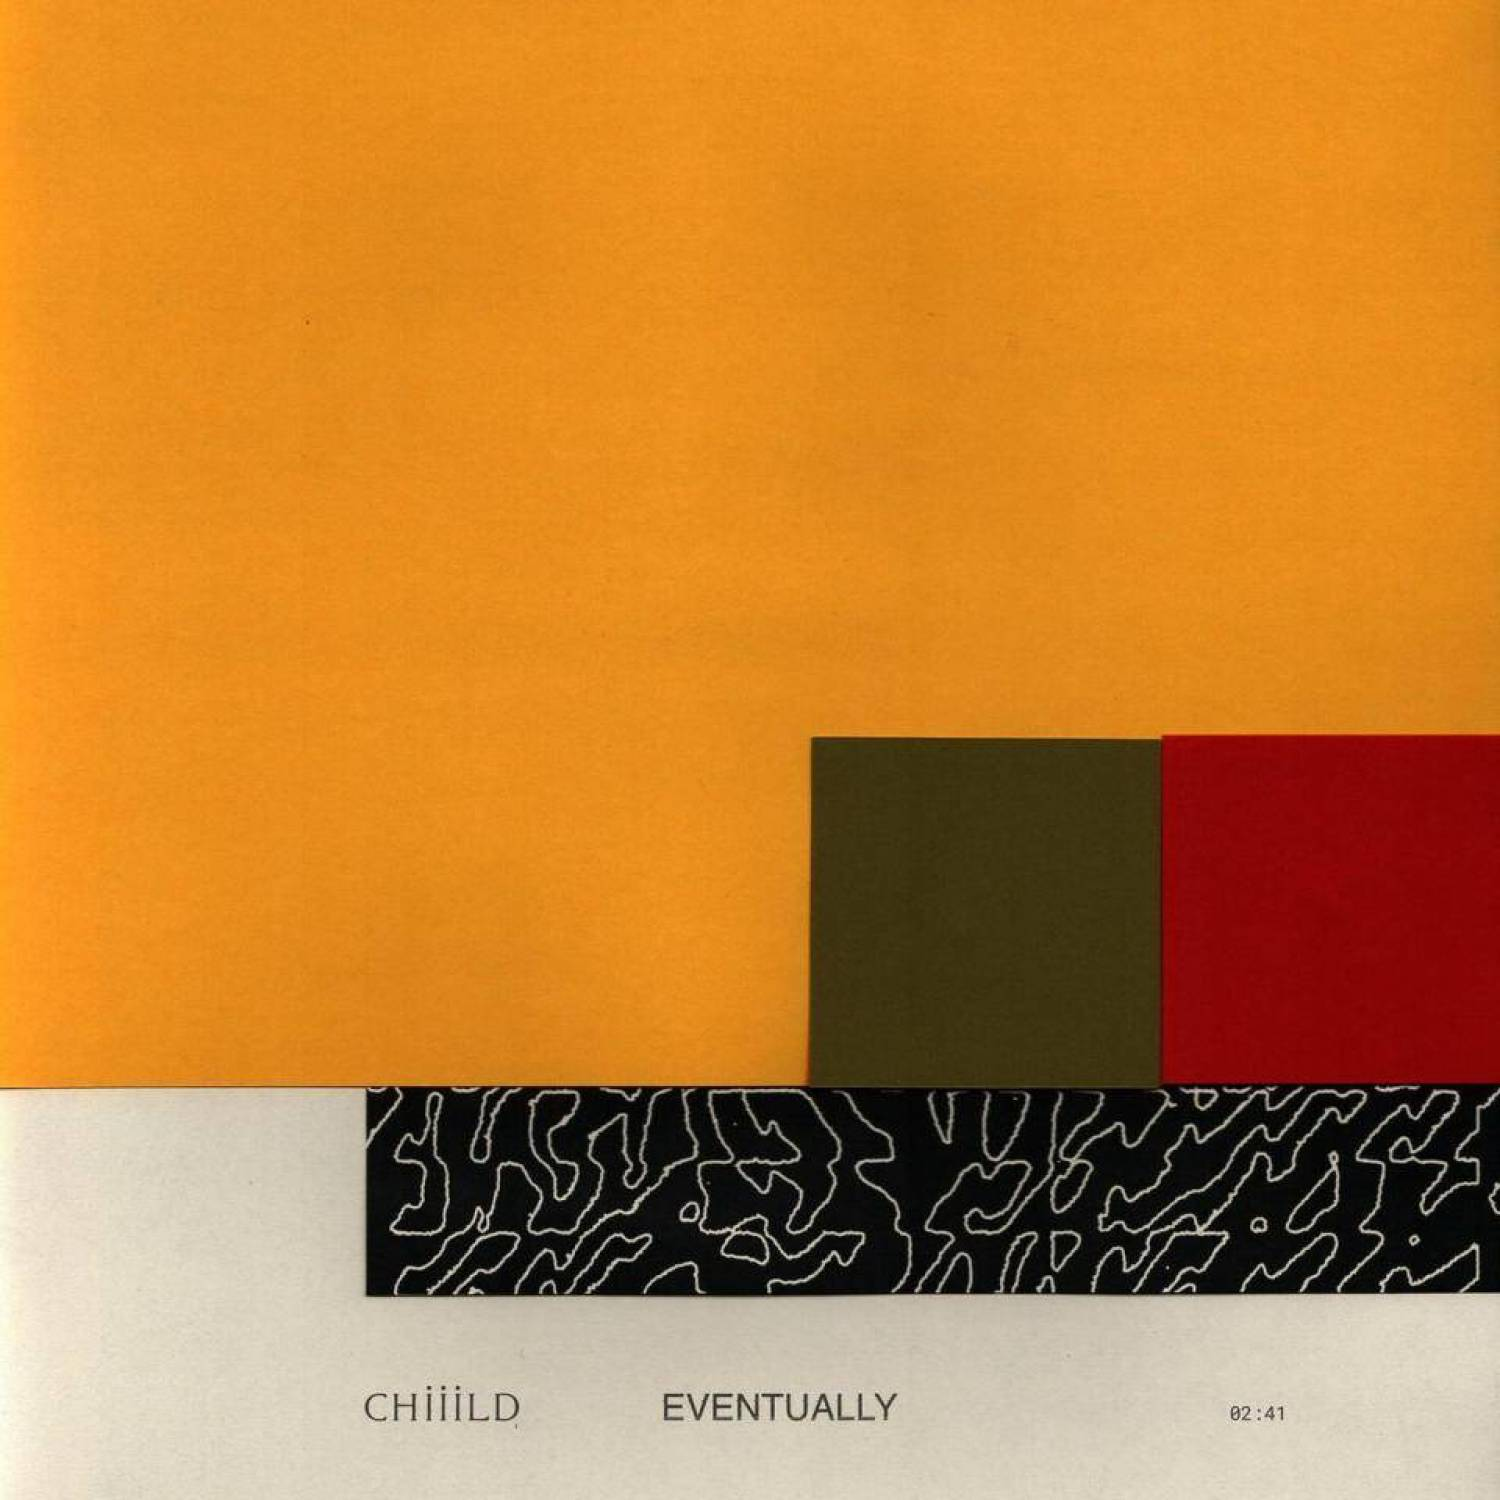 DOWNLOAD MP3: Chiiild – Eventually AUDIO 320kbps